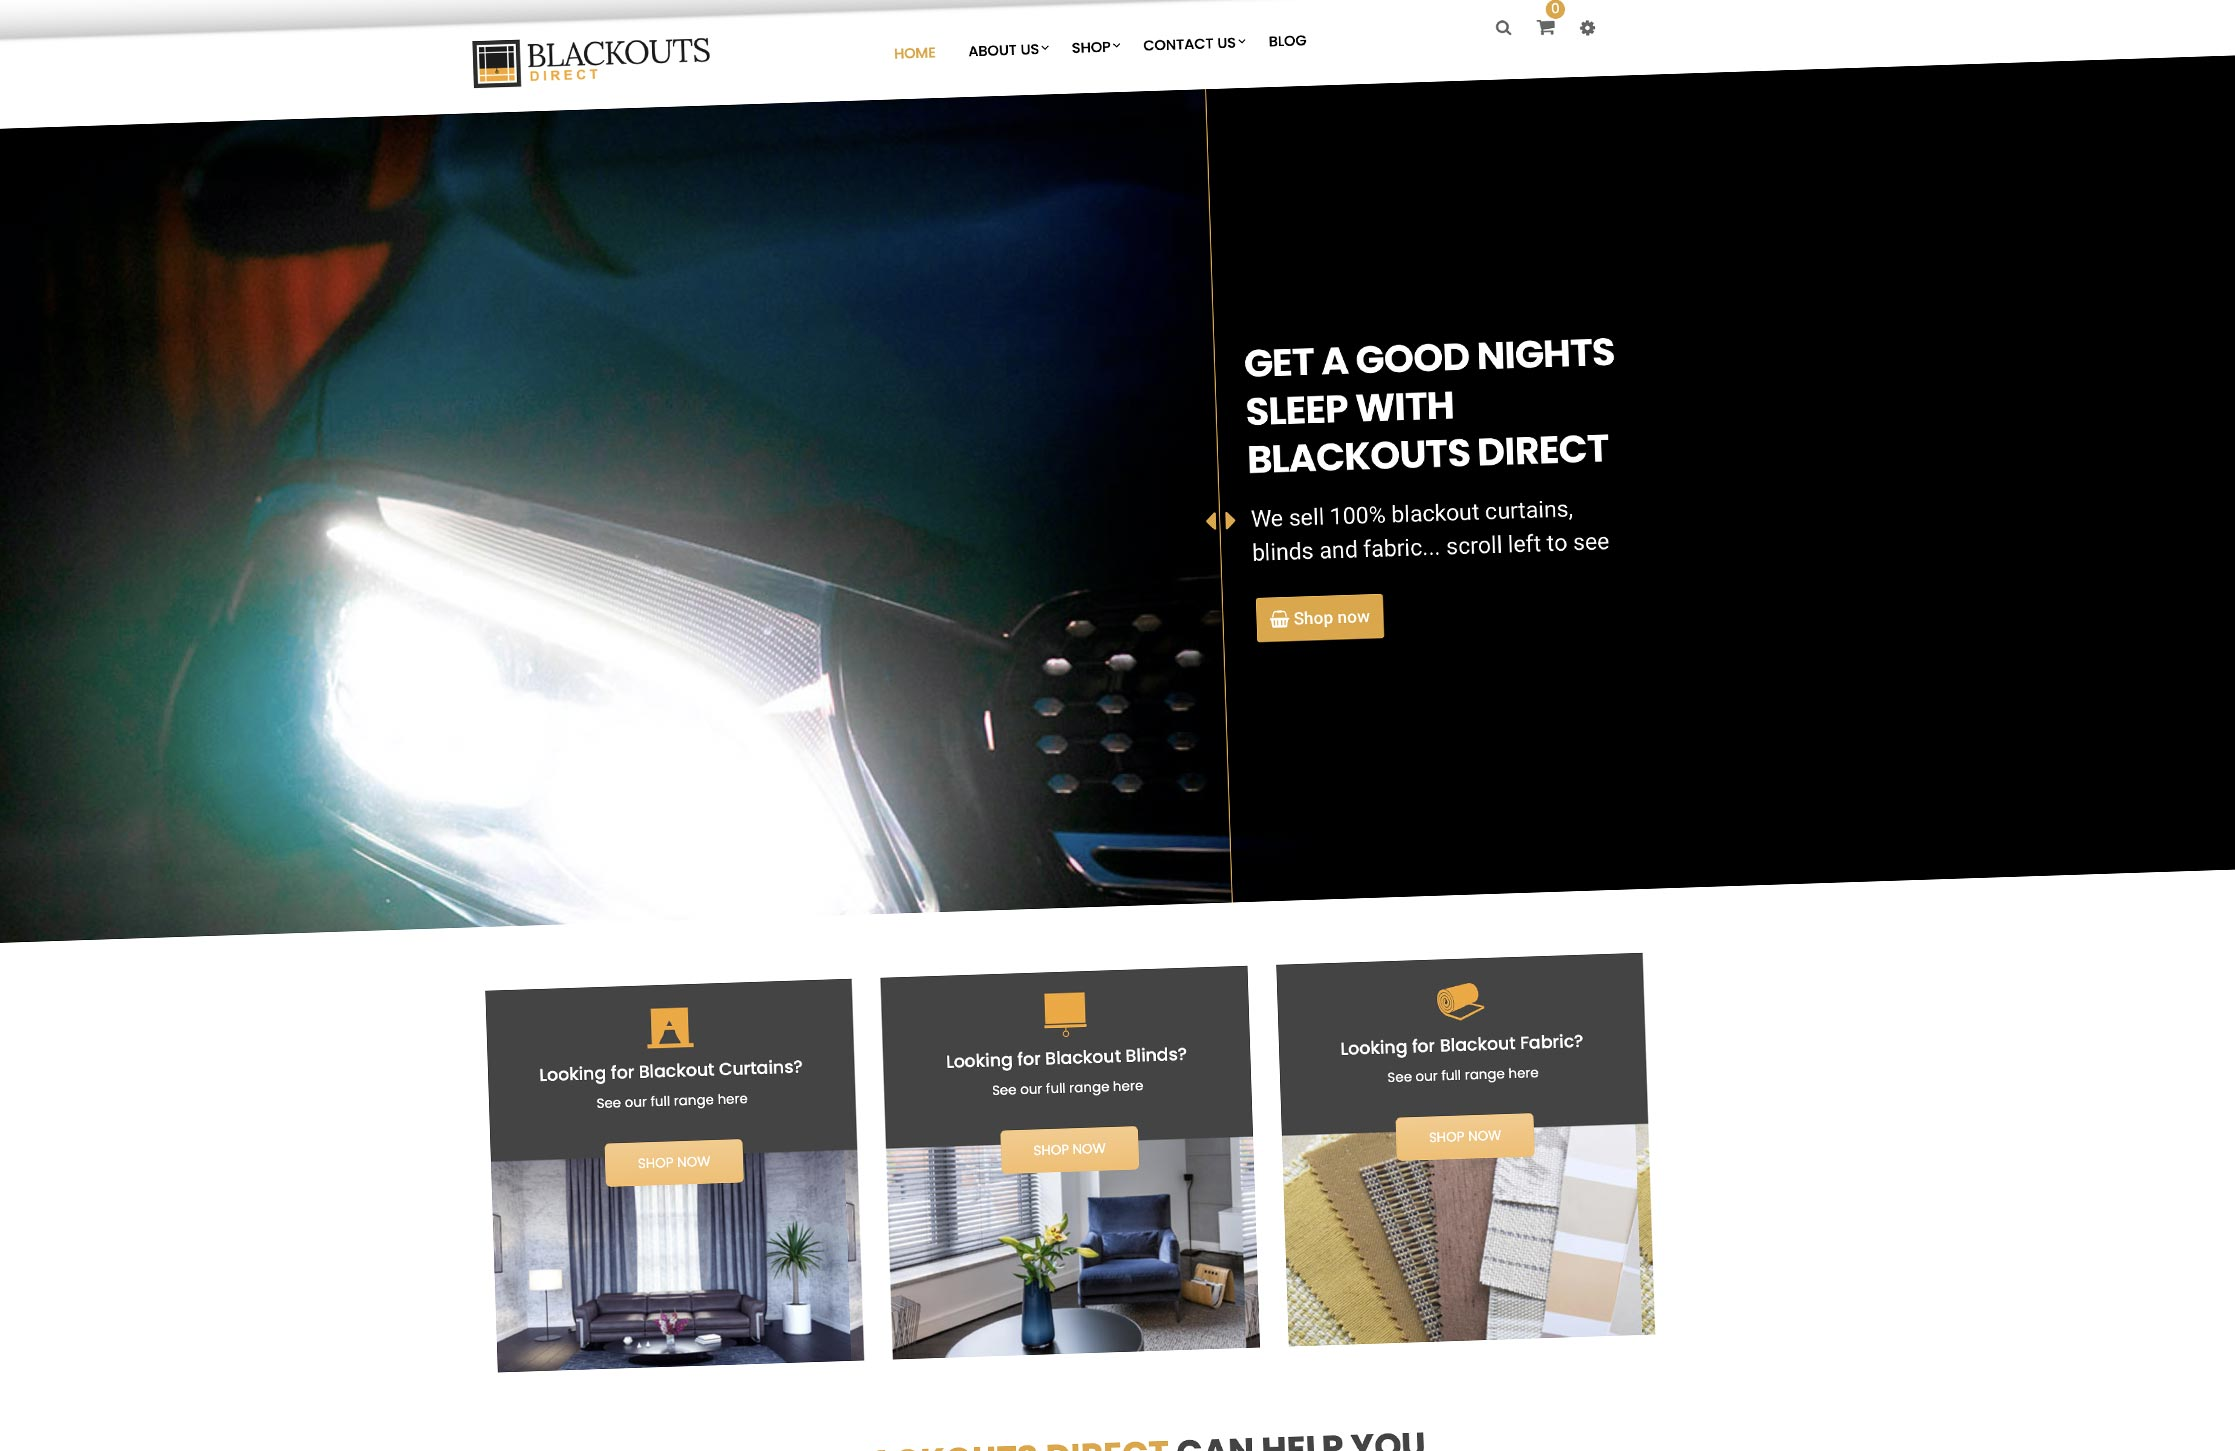 Blackouts Direct website design